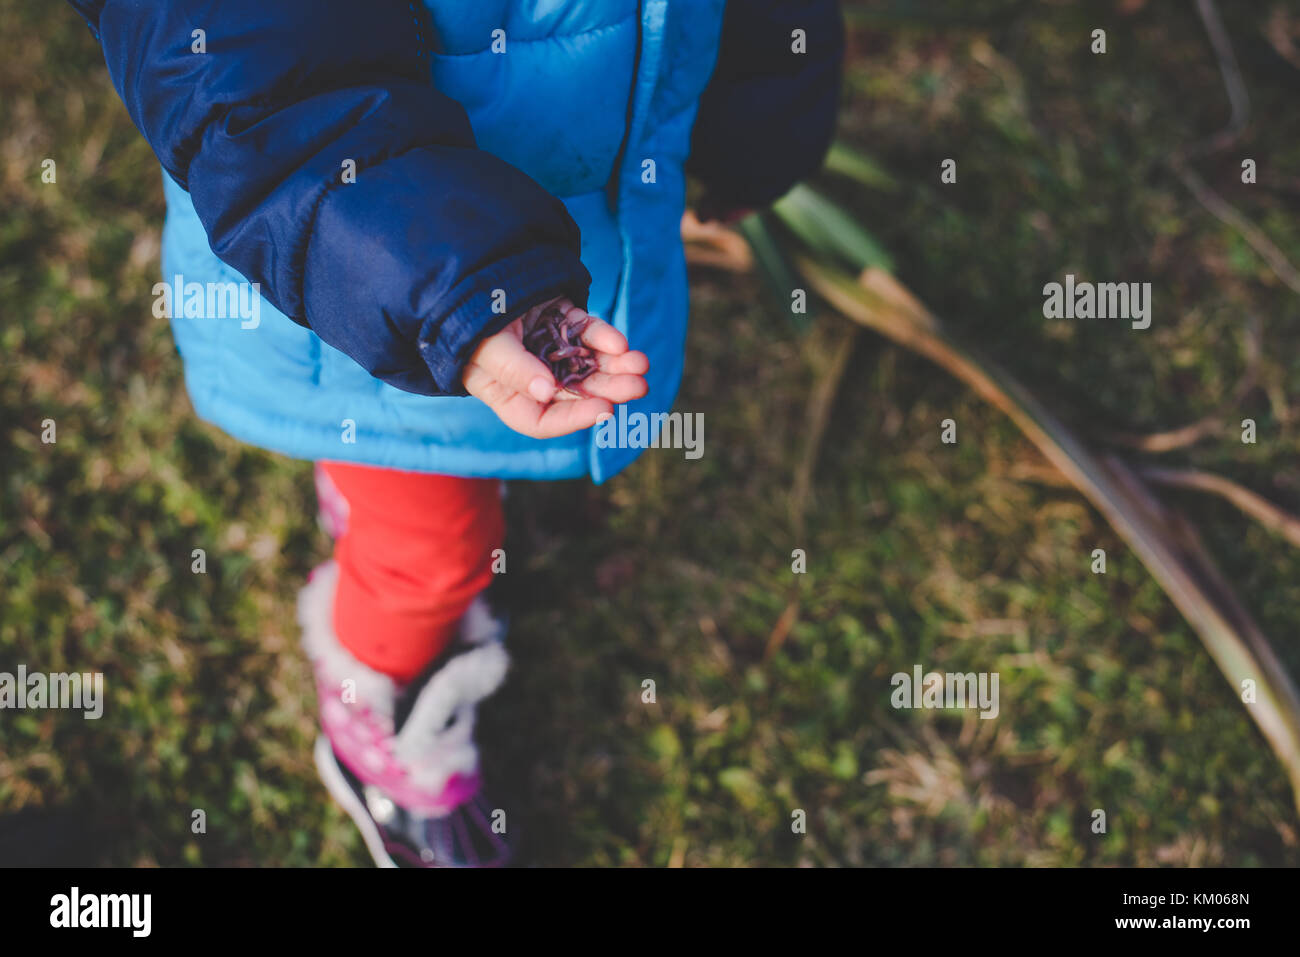 A little girl  holding earth worms in her hands. - Stock Image